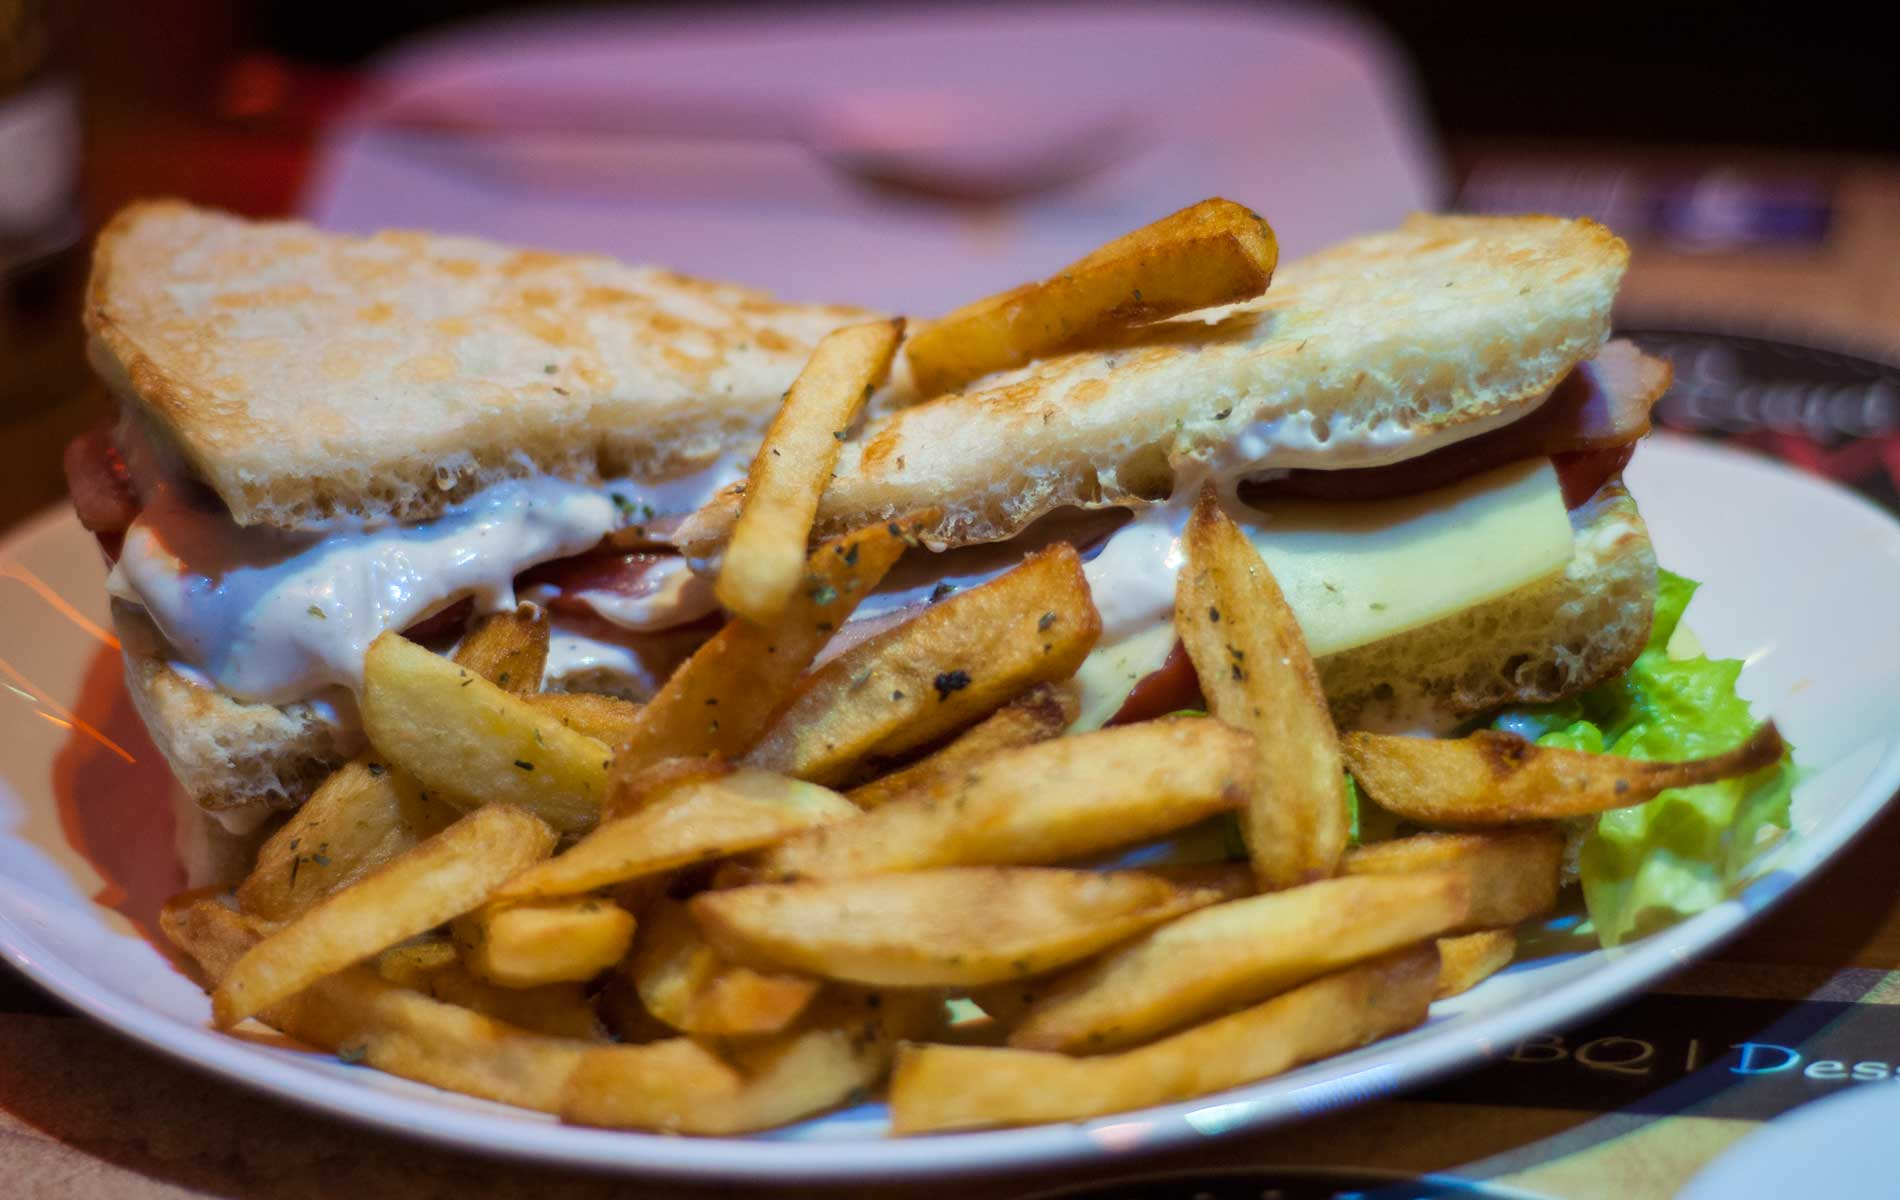 #clubsandwich, #willys, @bbq, #grill, #willysgrill, #pizzaclube